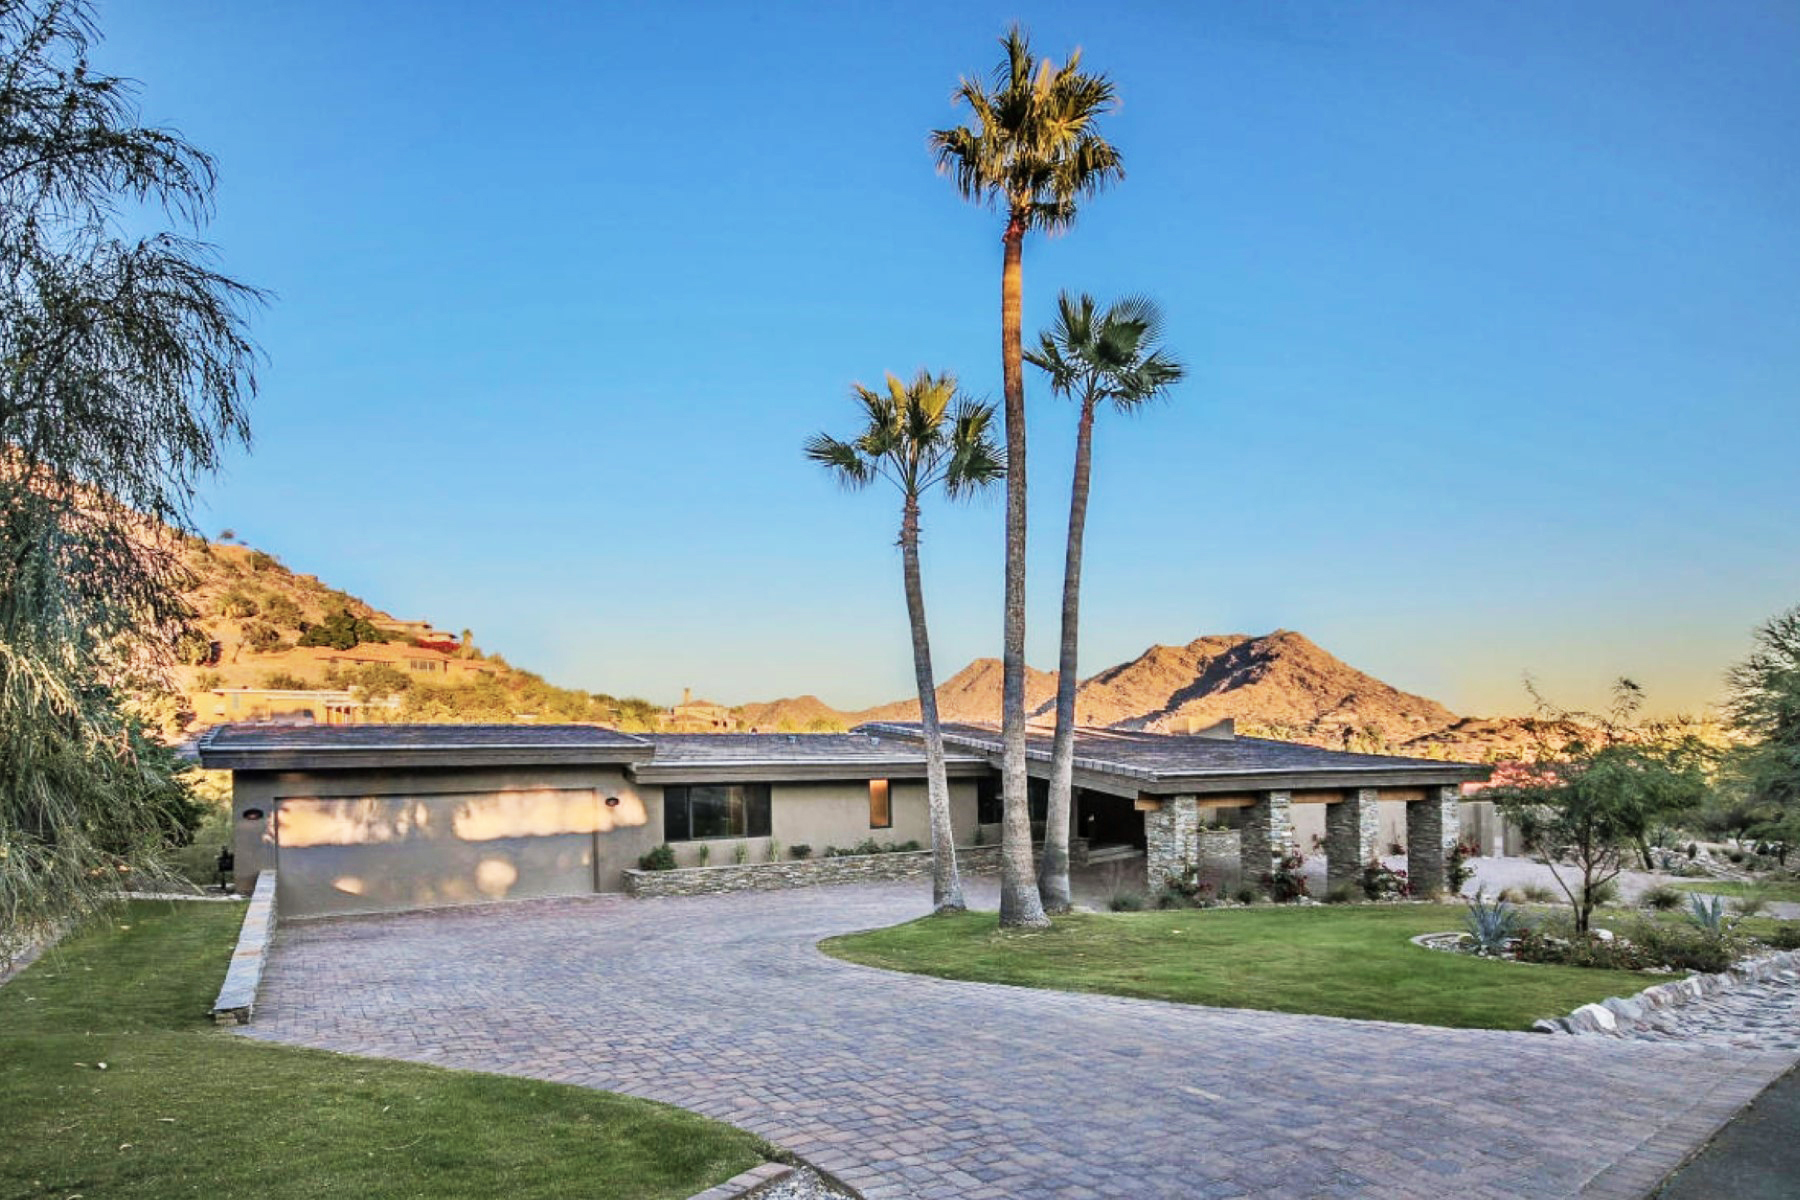 Single Family Home for Sale at Fully Remodeled Paradise Valley Soft Contemporary 4502 E Clearwater Pkwy Paradise Valley, Arizona 85253 United States